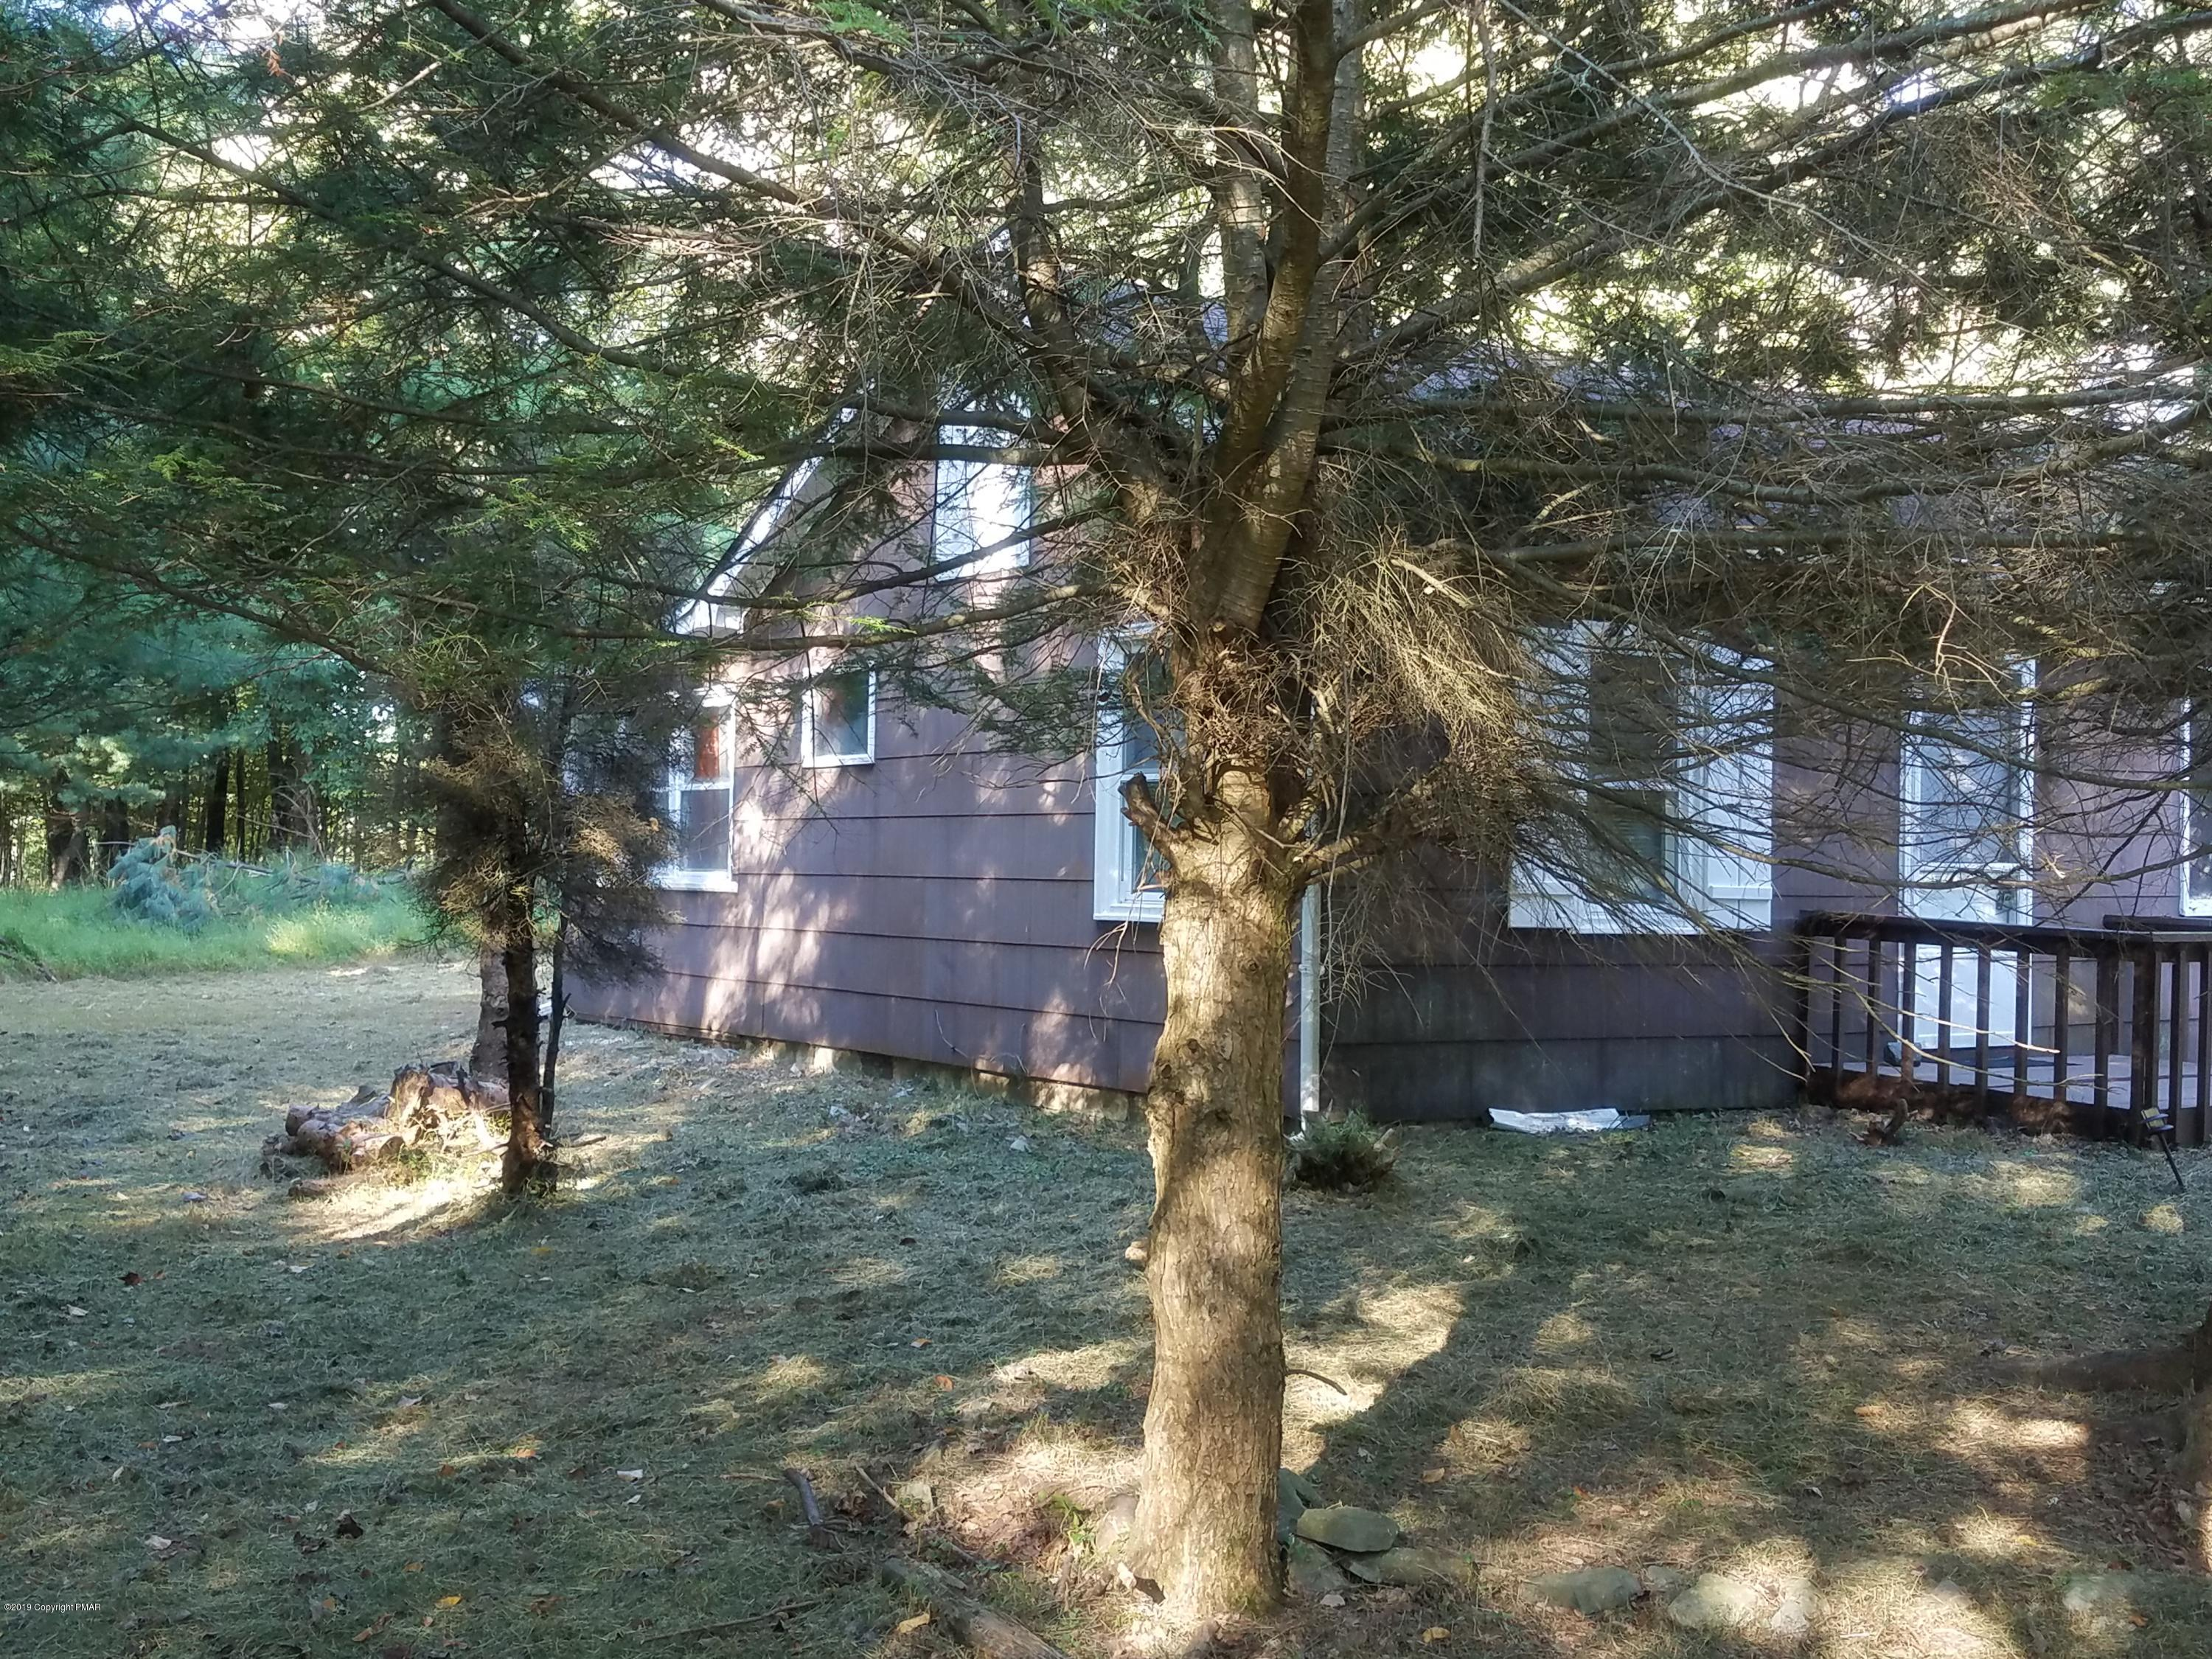 105 Chariton Dr, East Stroudsburg, PA 18301